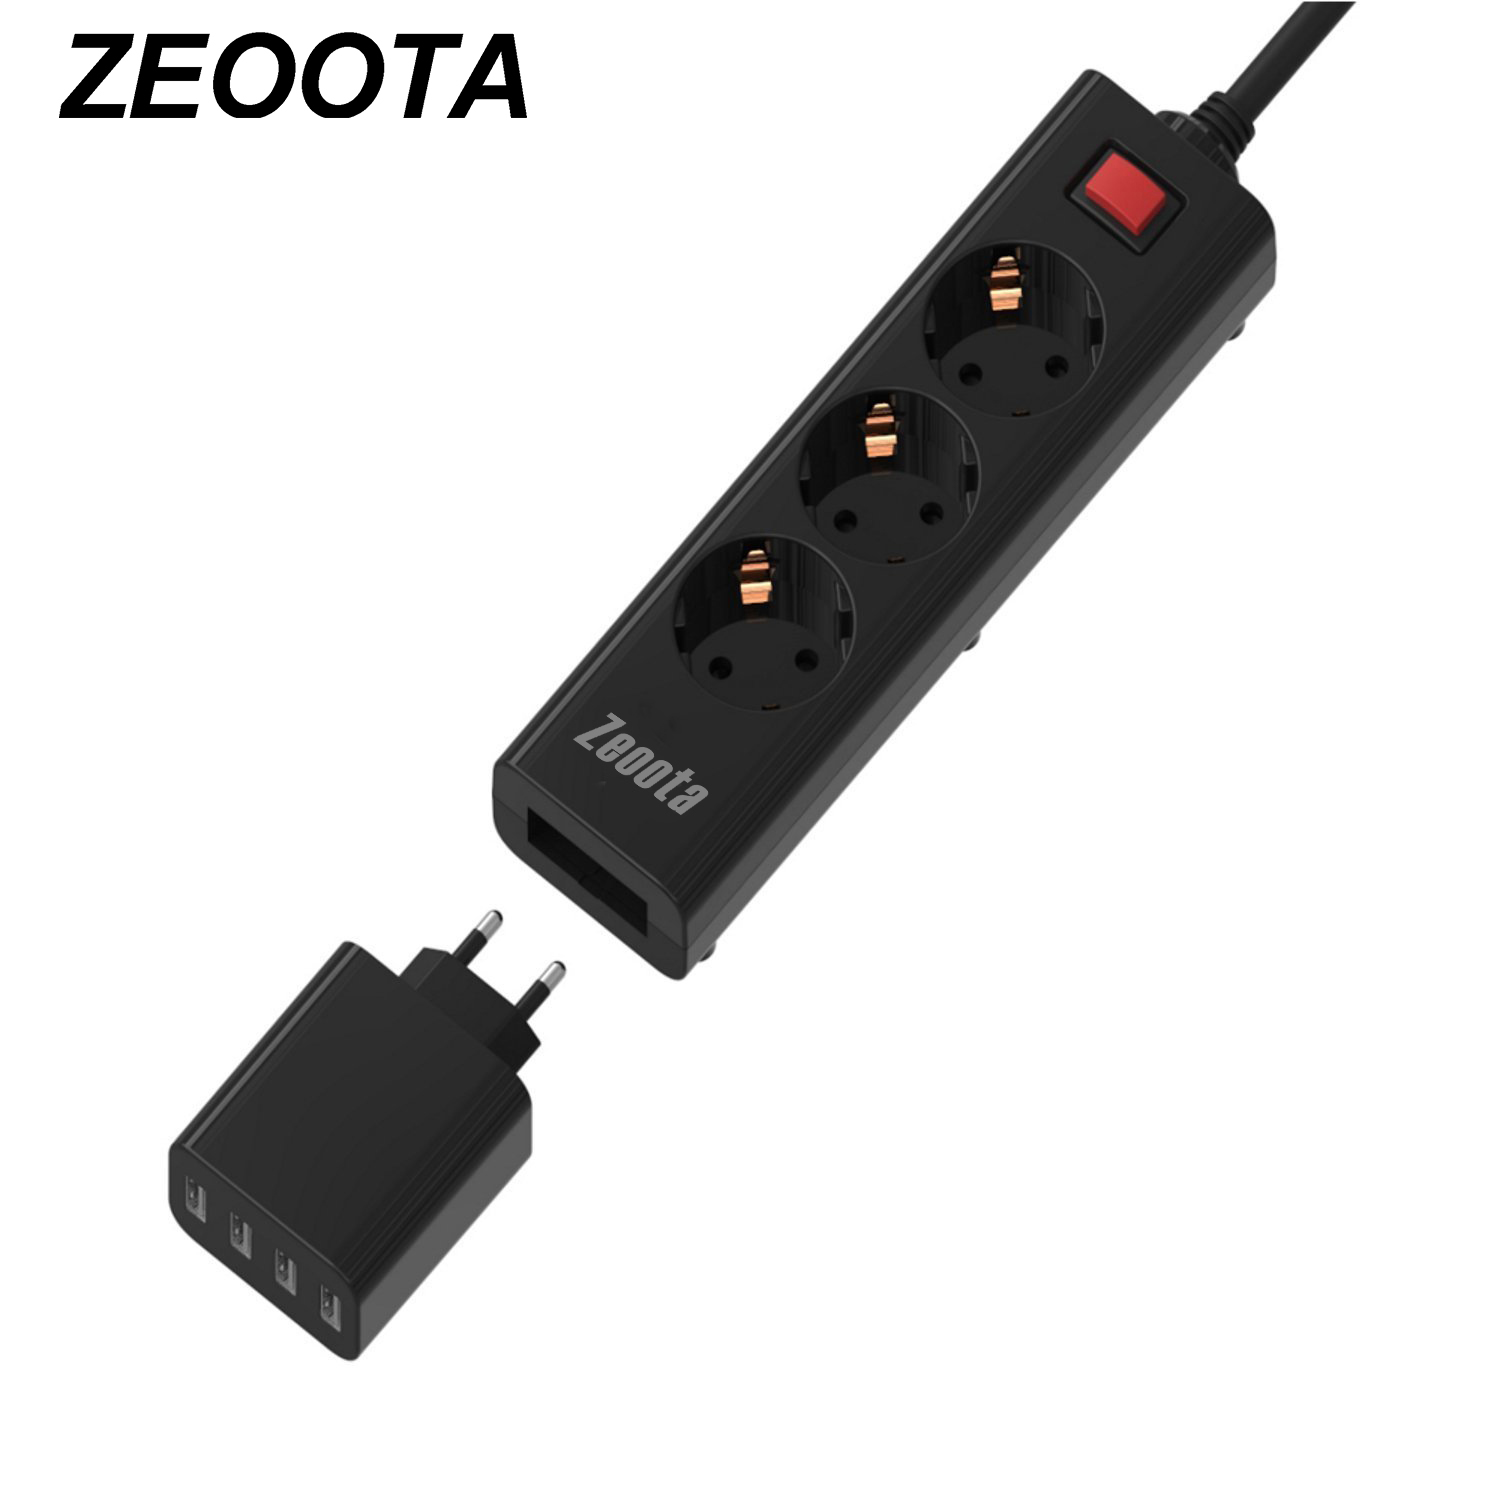 все цены на Power Strip Multiple Socket with USB 3 EU Outlets 4 USB Ports Removable Quick Wall Charger Surge Protection 1.5m Extension Cord онлайн